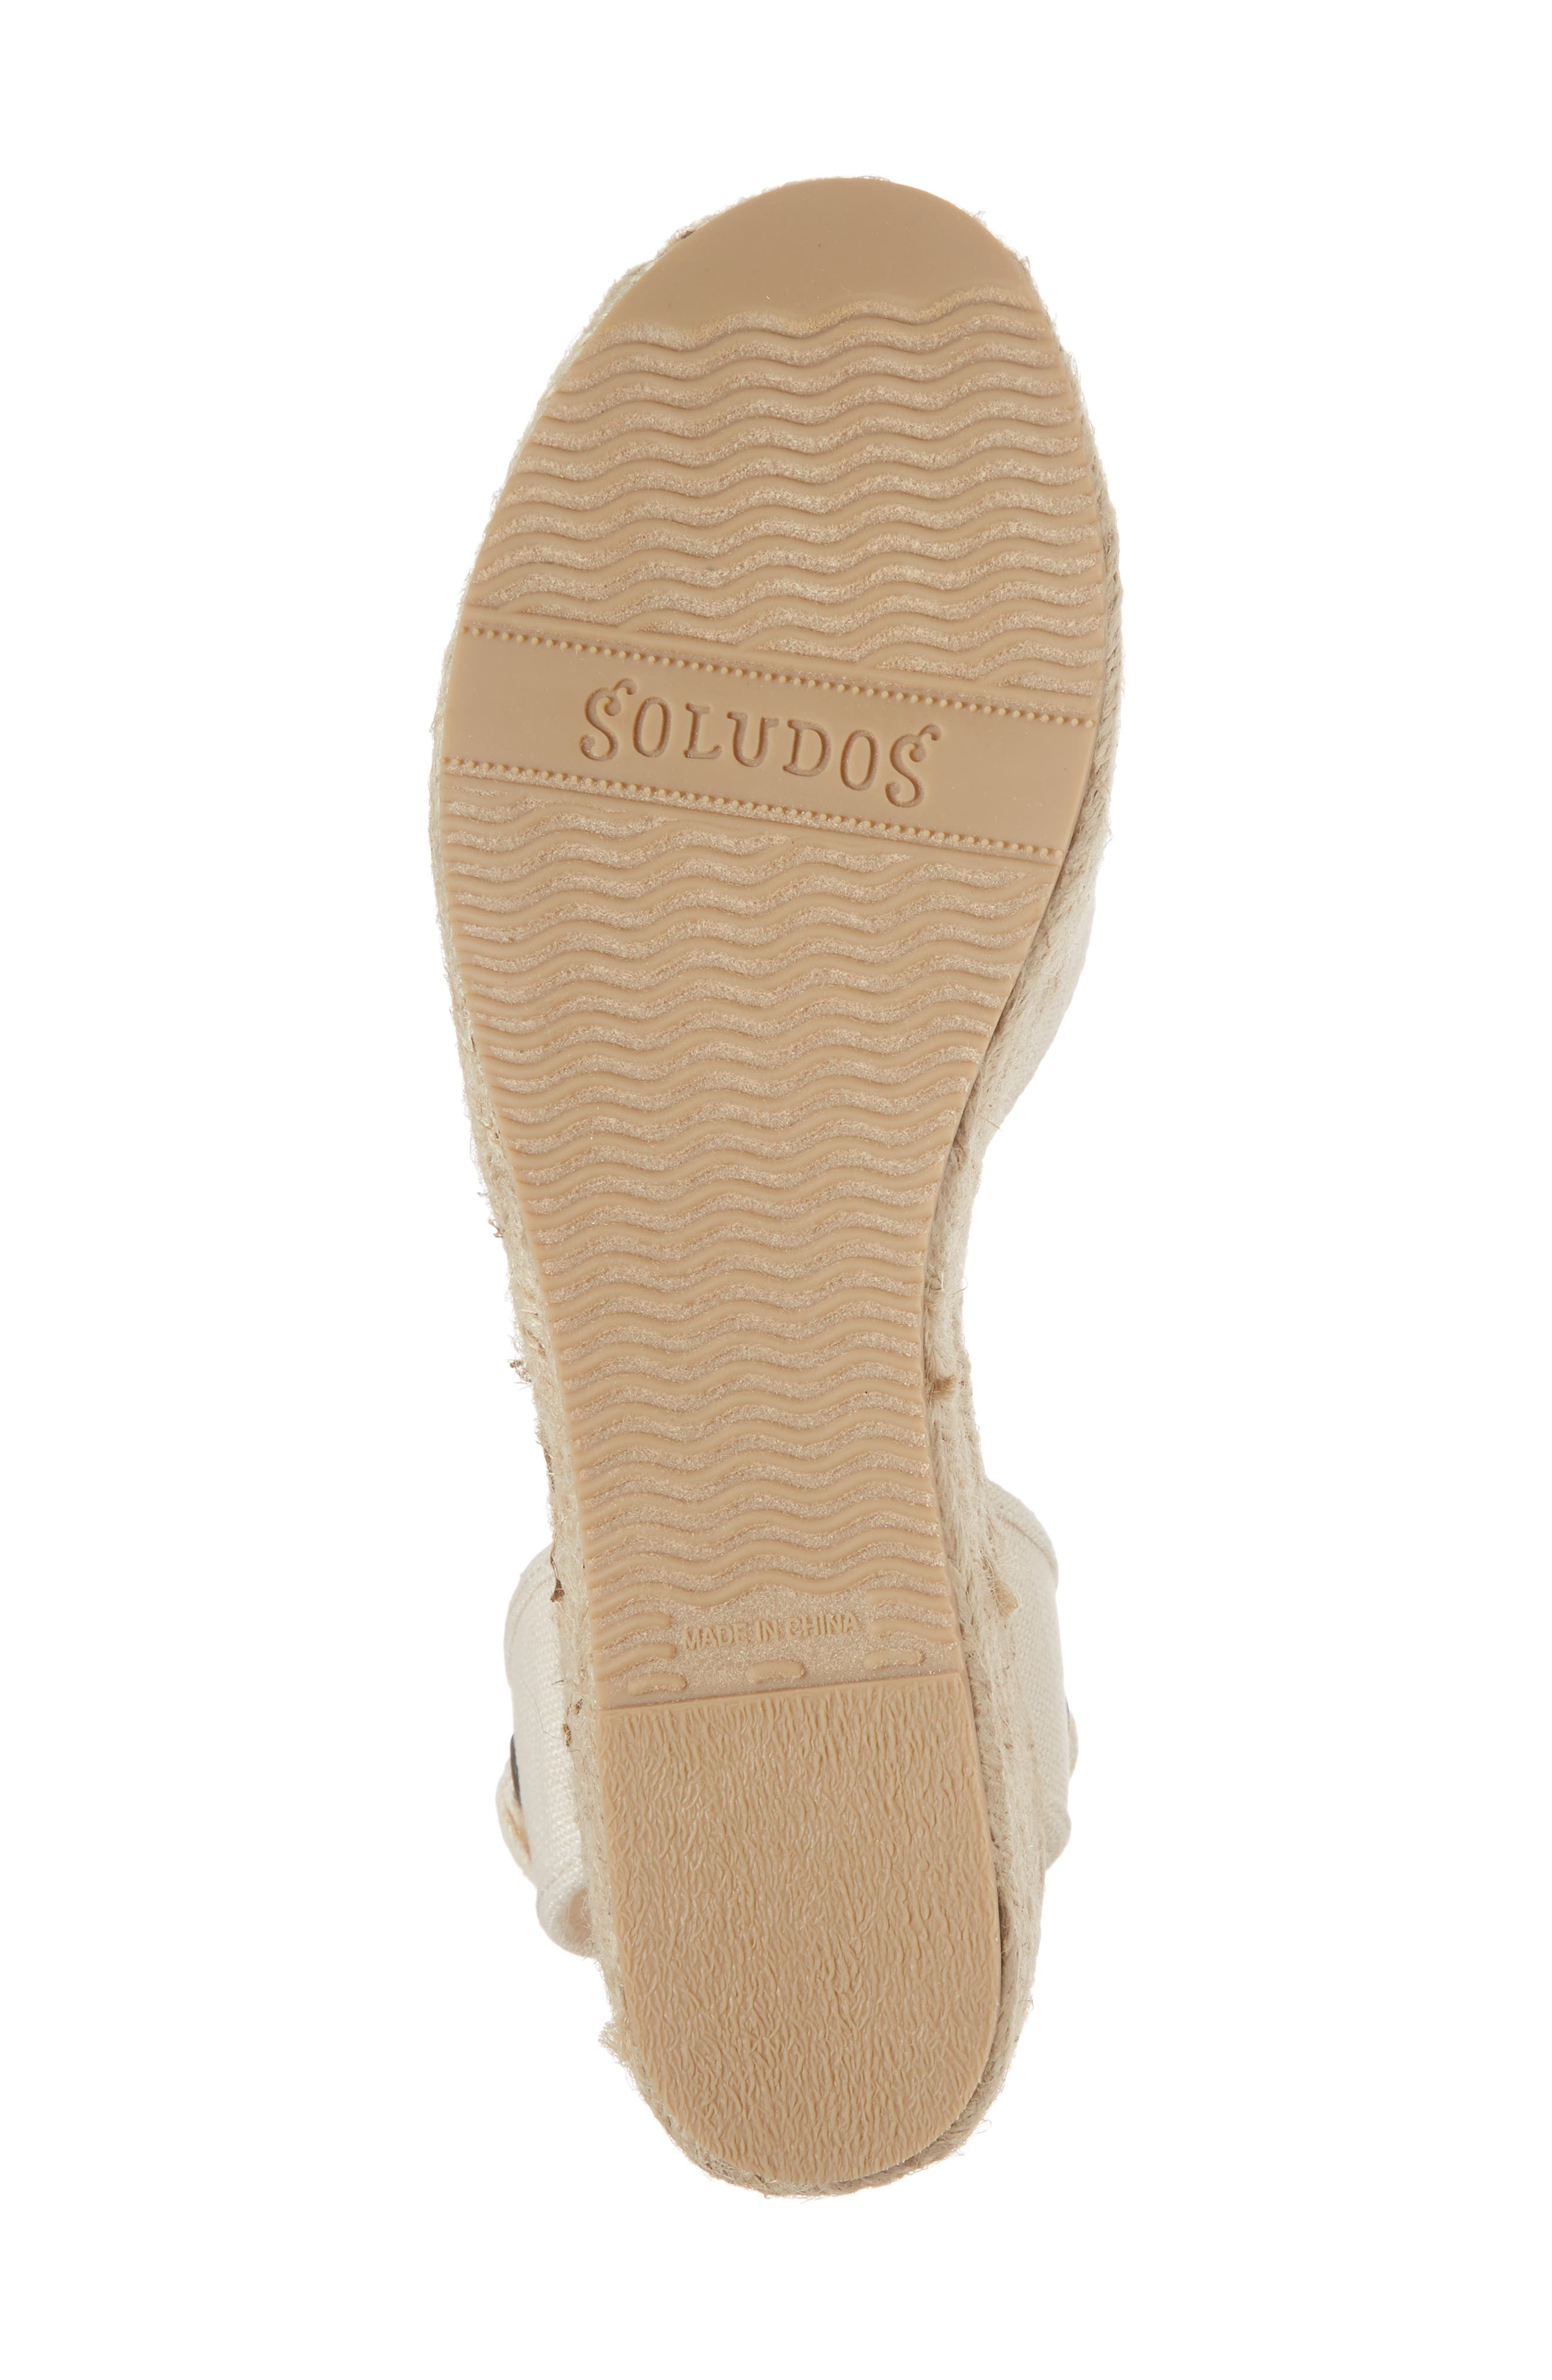 Espadrille Platform Sandal,                             Alternate thumbnail 6, color,                             BLUSH FABRIC